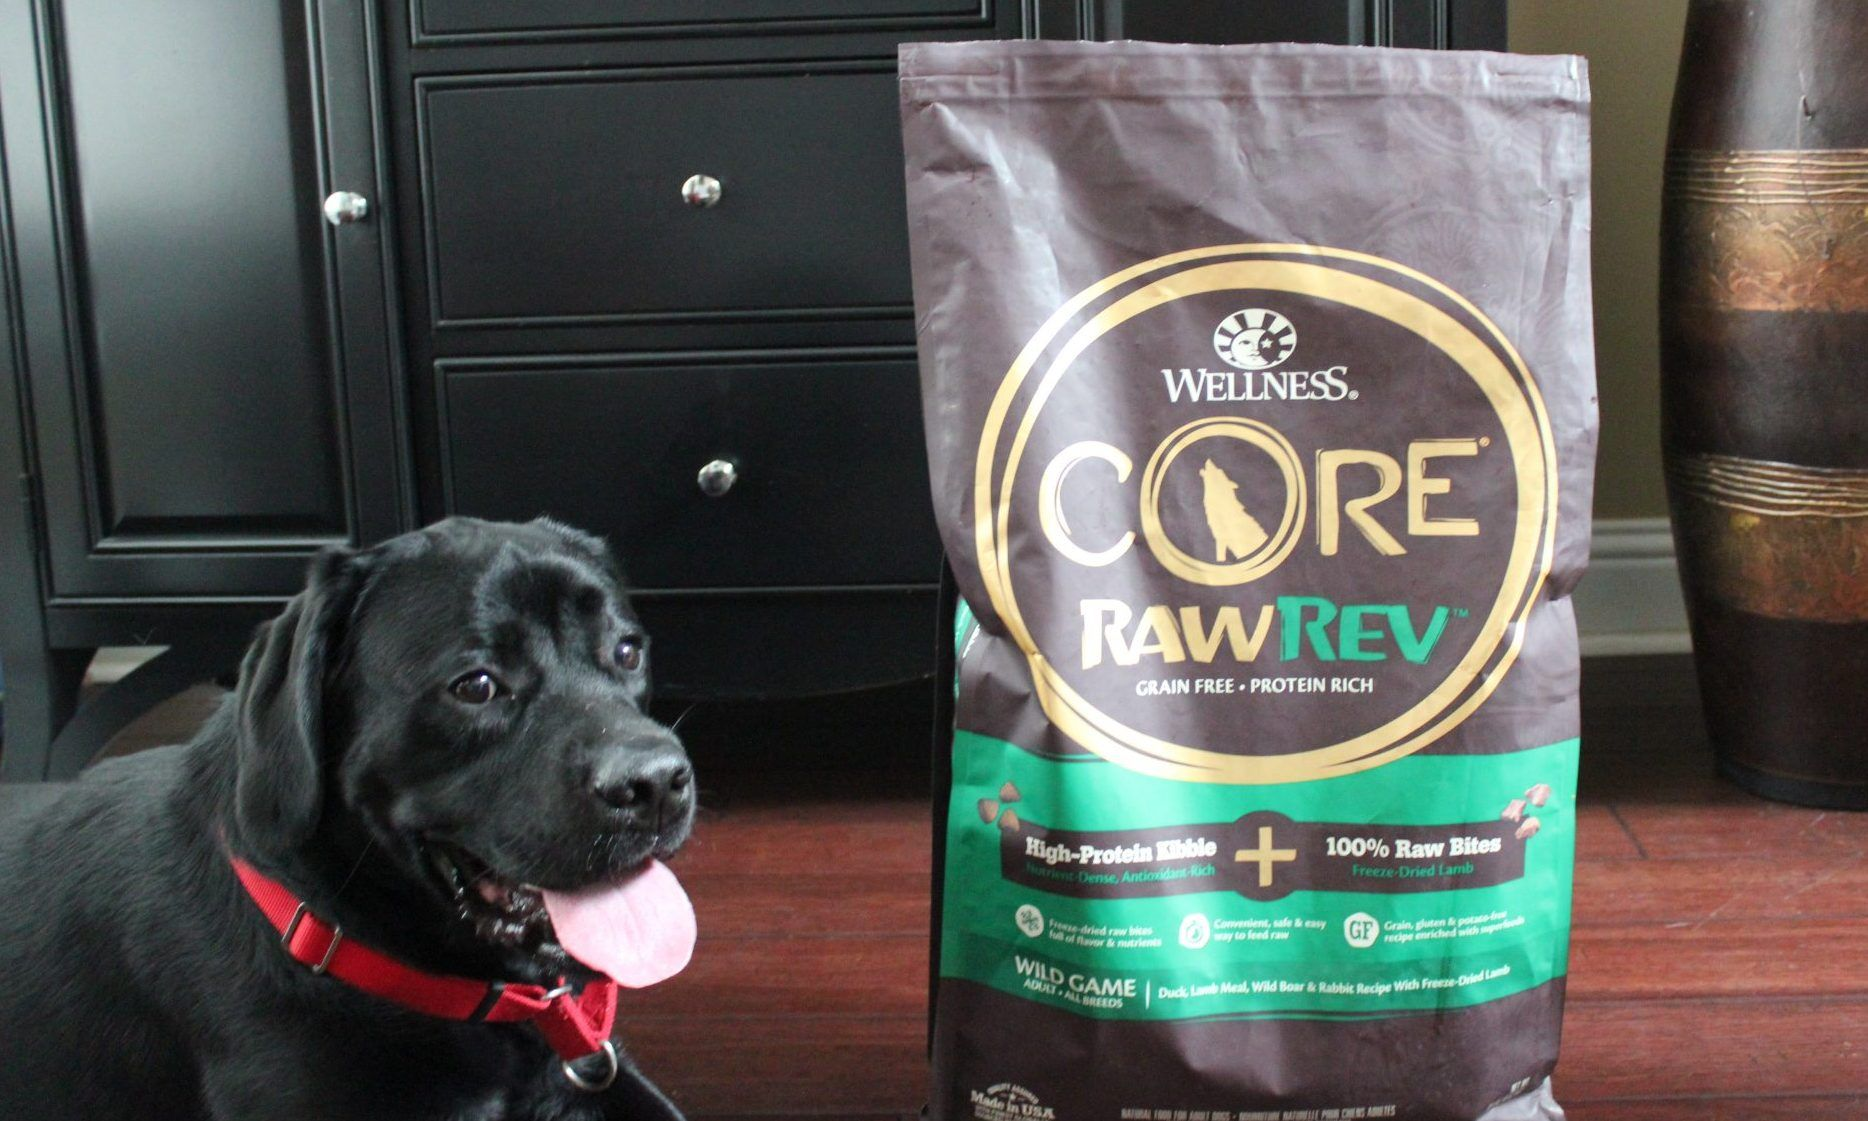 Your dog will CRAVE this new grain free kibble that is